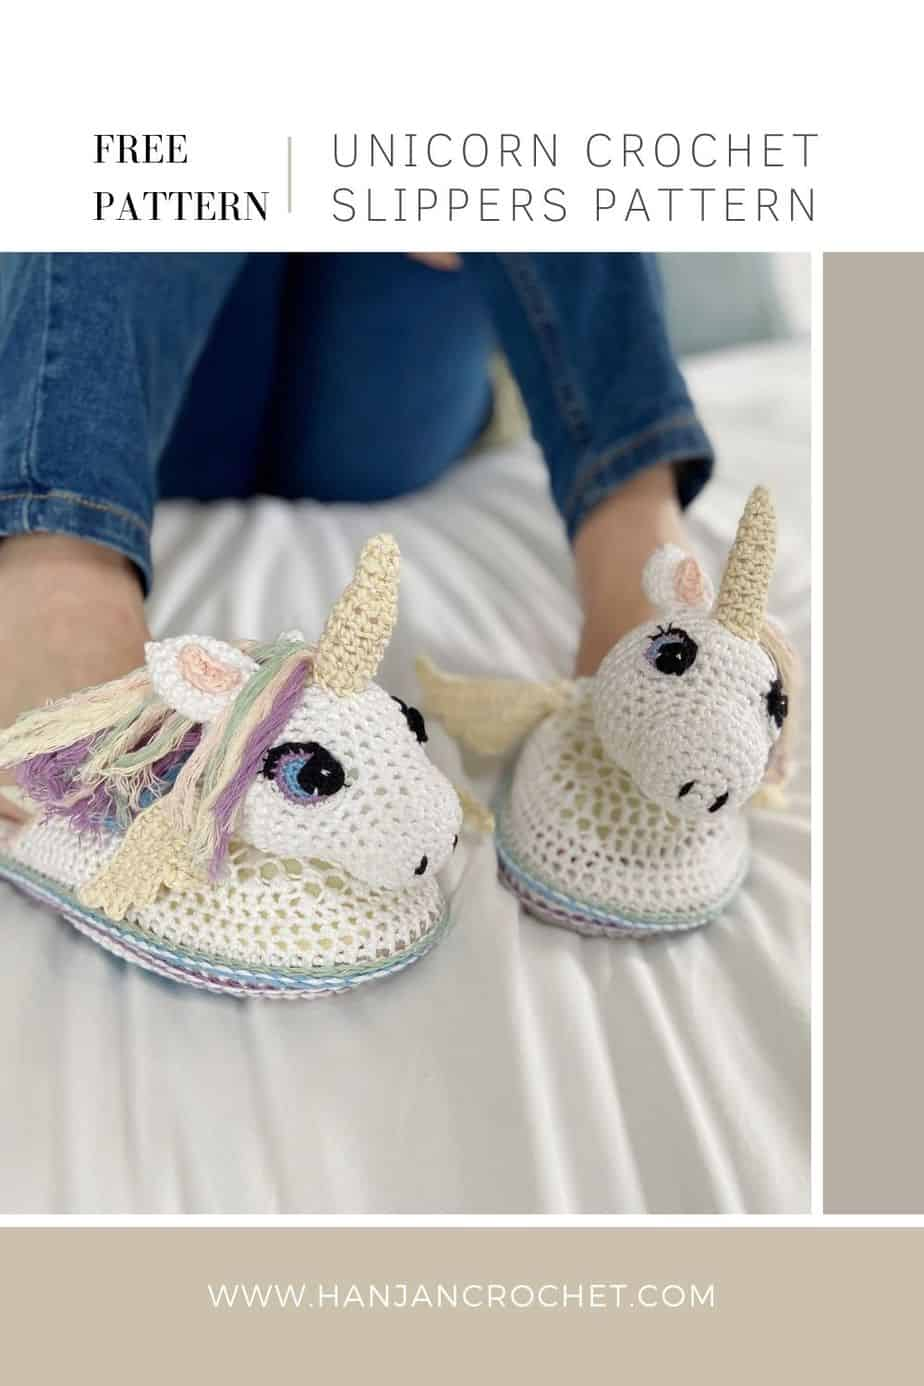 pair of unicorn crochet slippers being worn by someone in jeans sitting on a bed